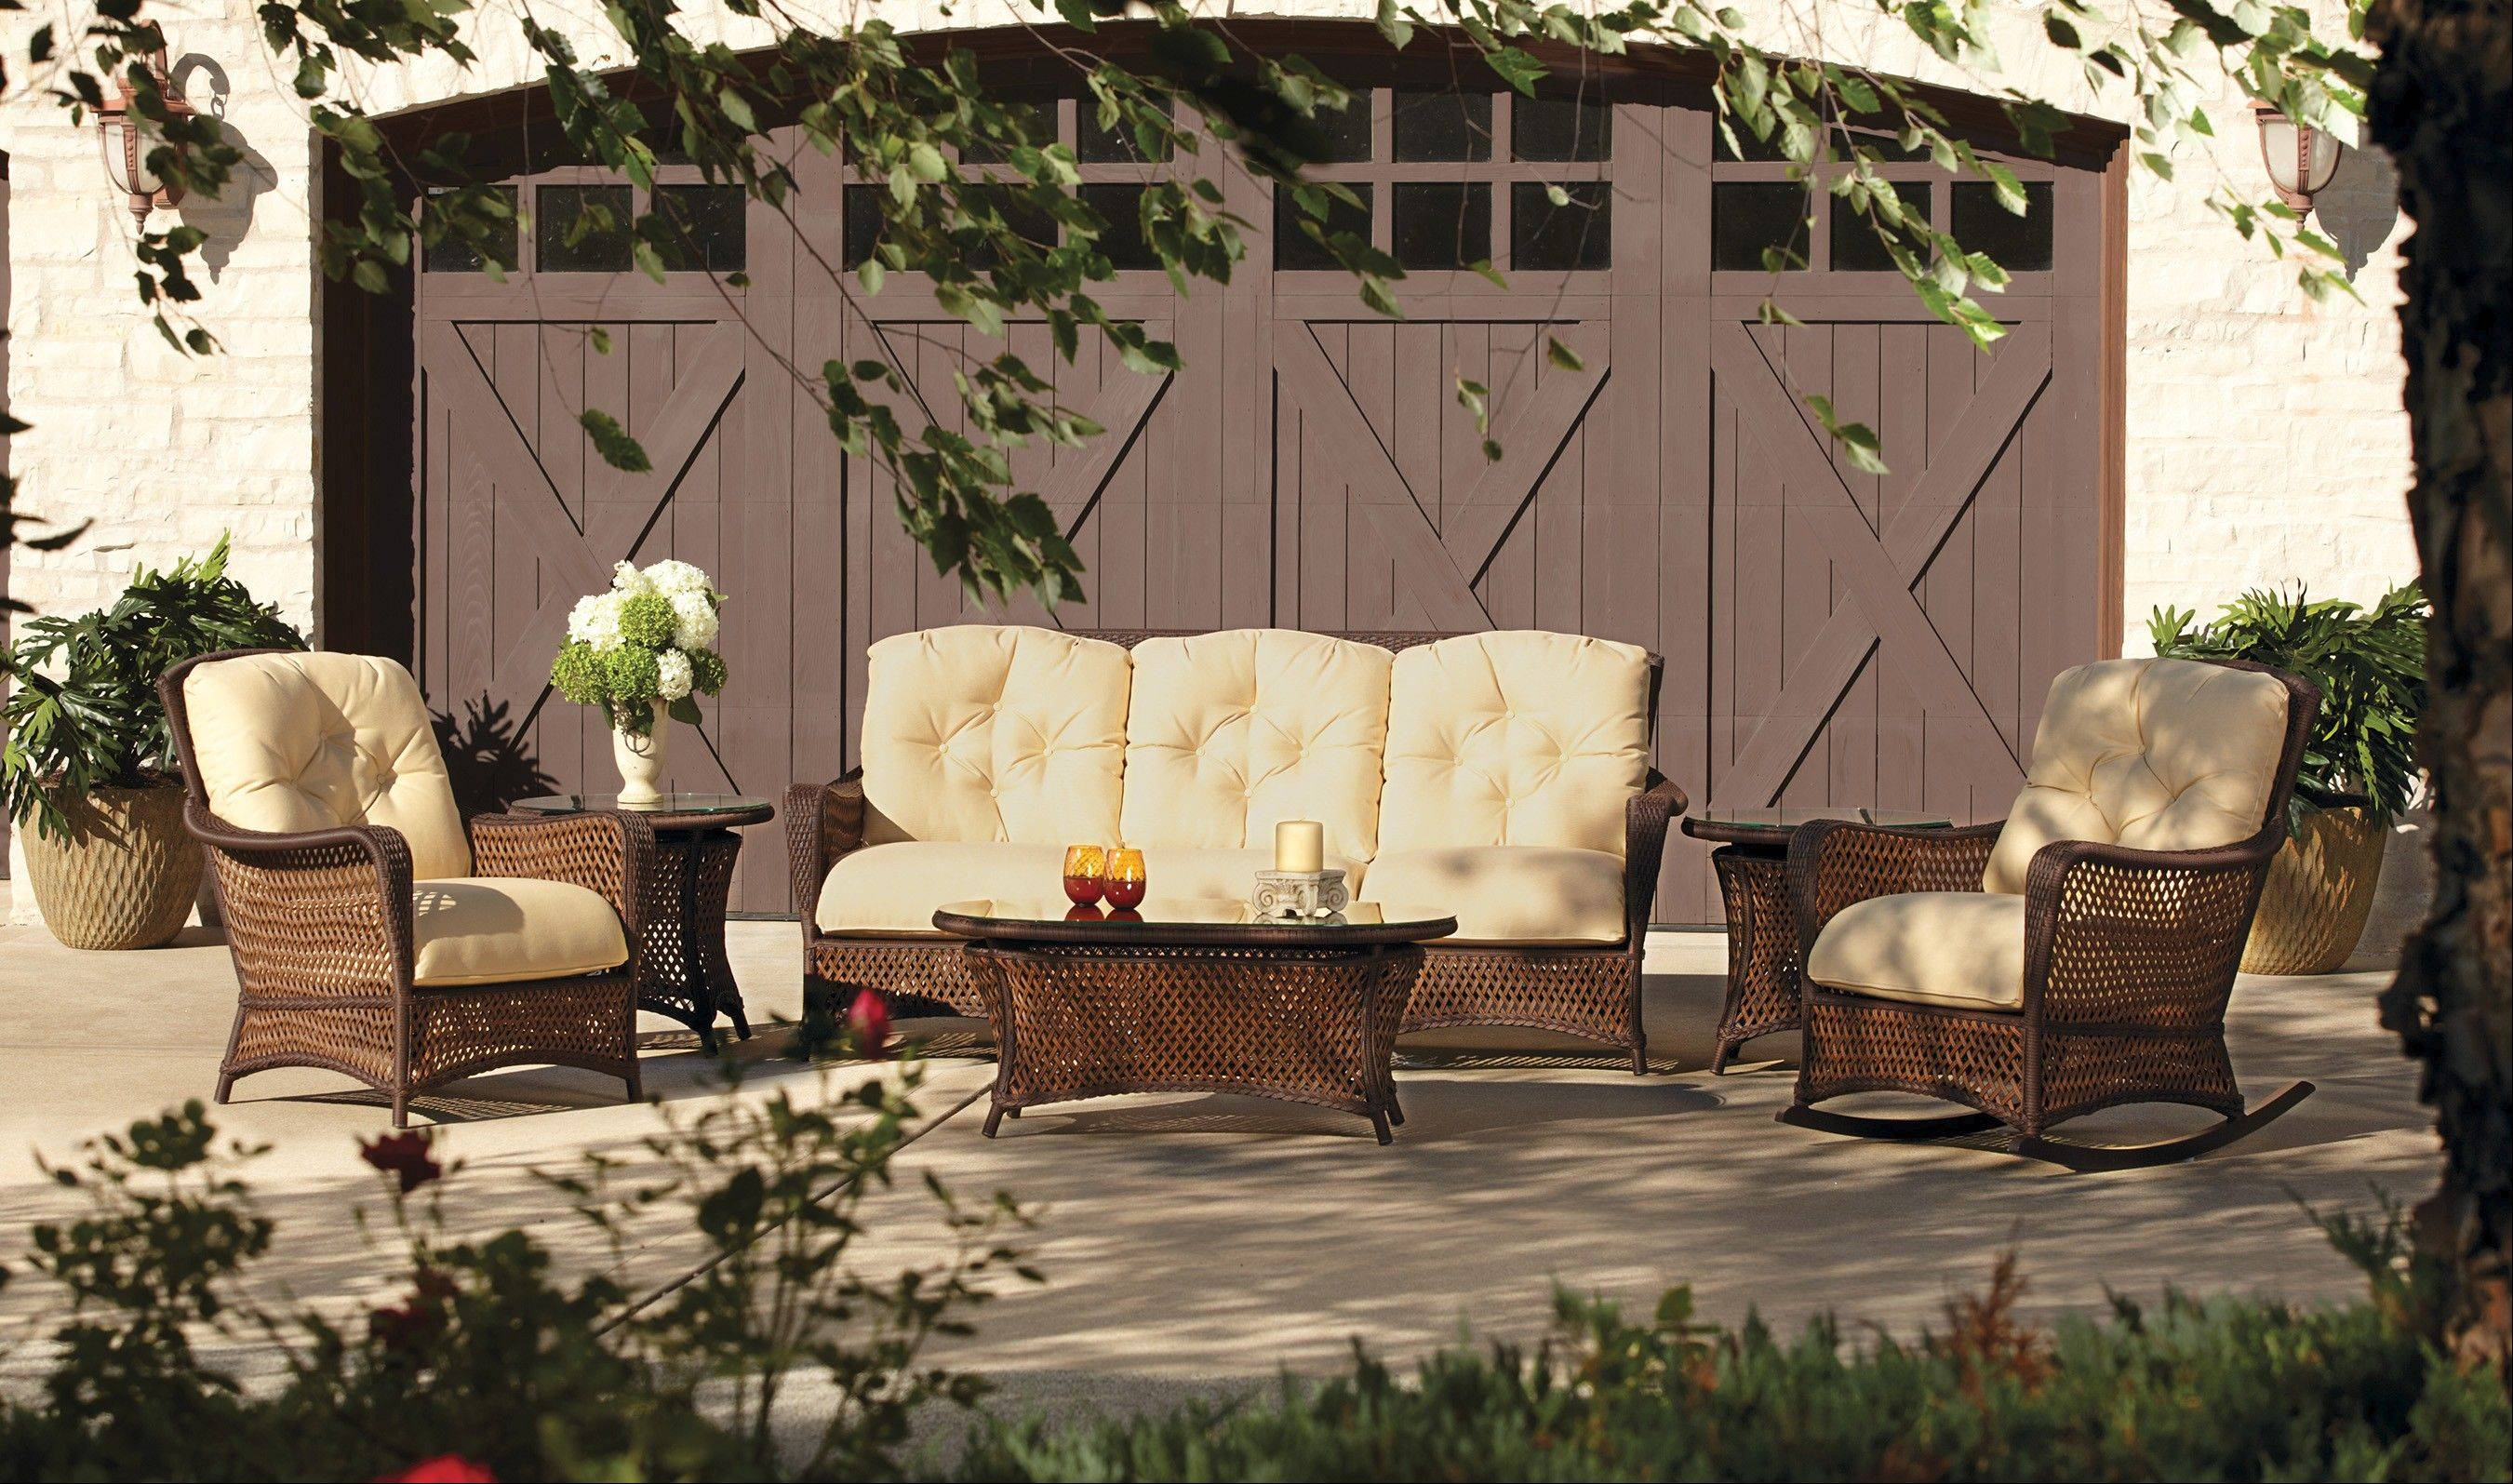 A Lloyd Flanders set could provide a seating area with sofa and a love seat with two lounge chairs around the pond with dining behind it in all-weather vinyl wicker with aluminum frame and cushions.